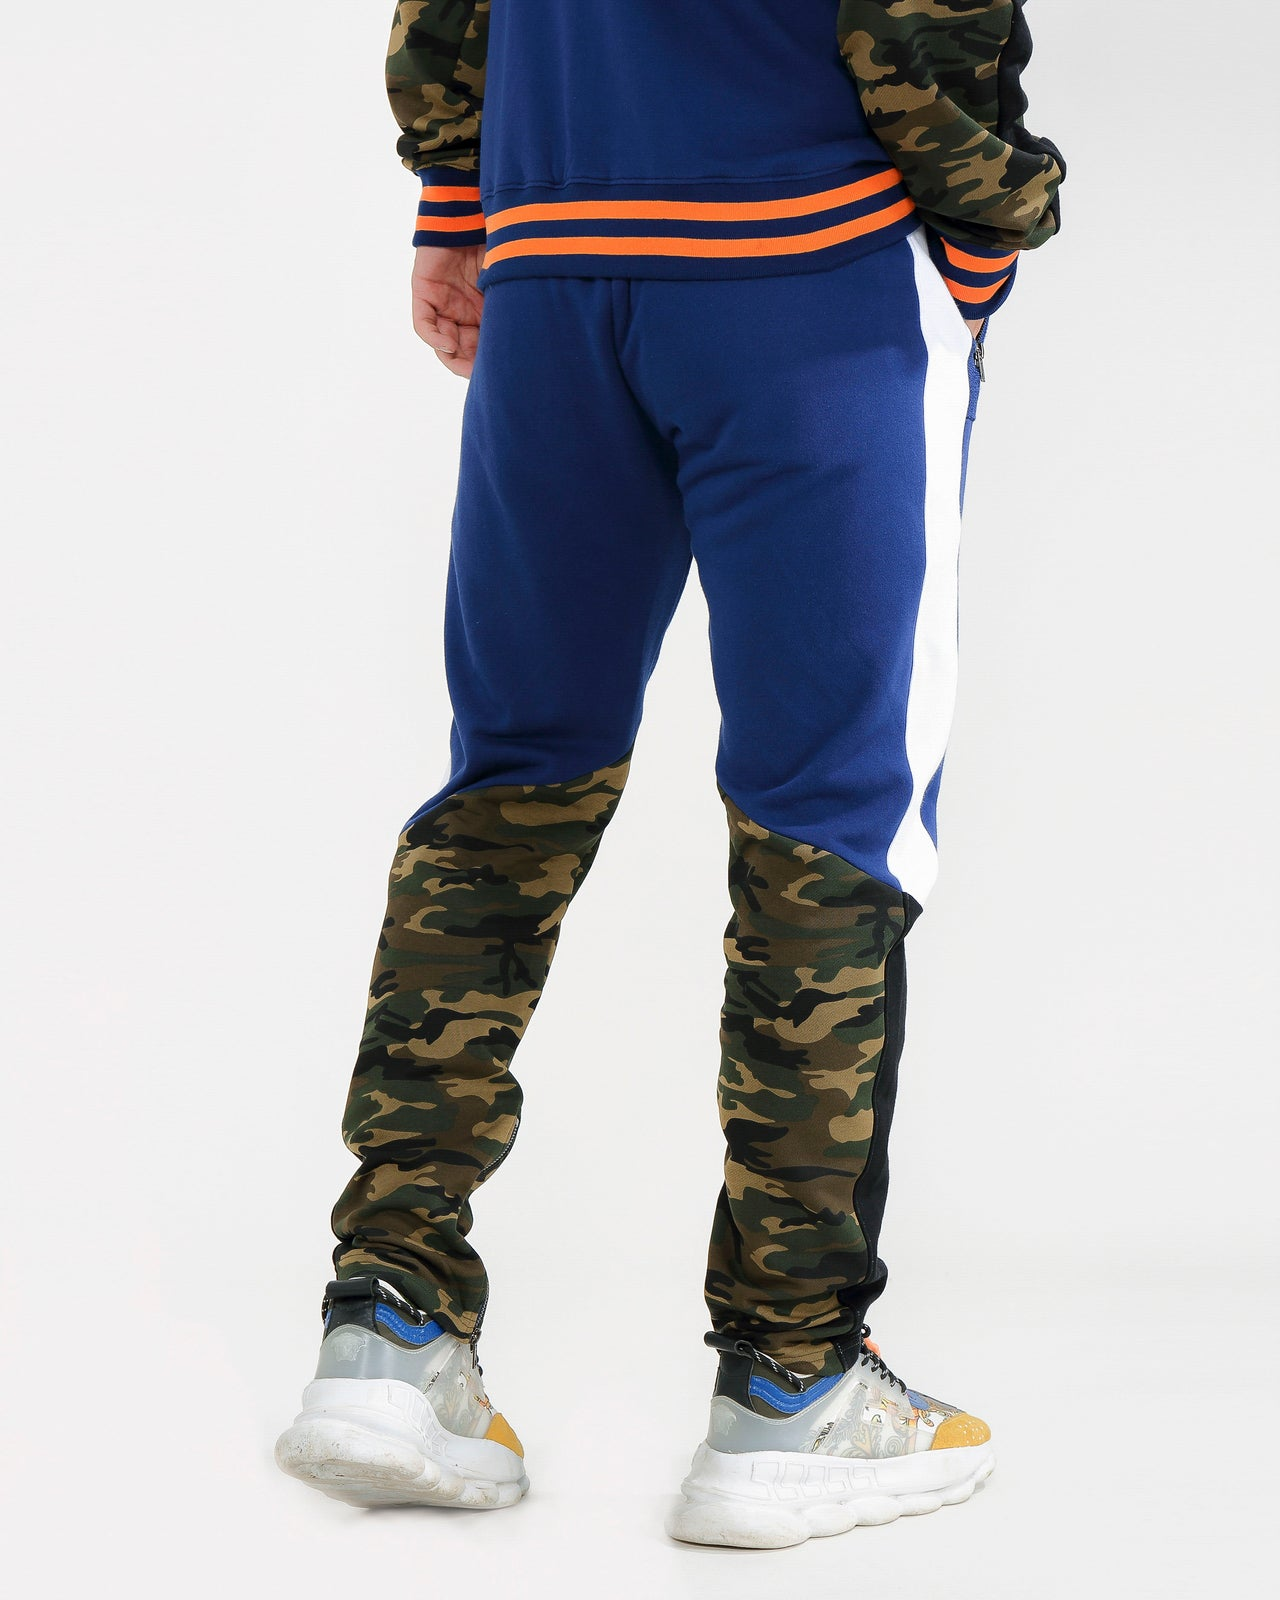 LION CAMO TRACK PANTS-COLOR: BLUE